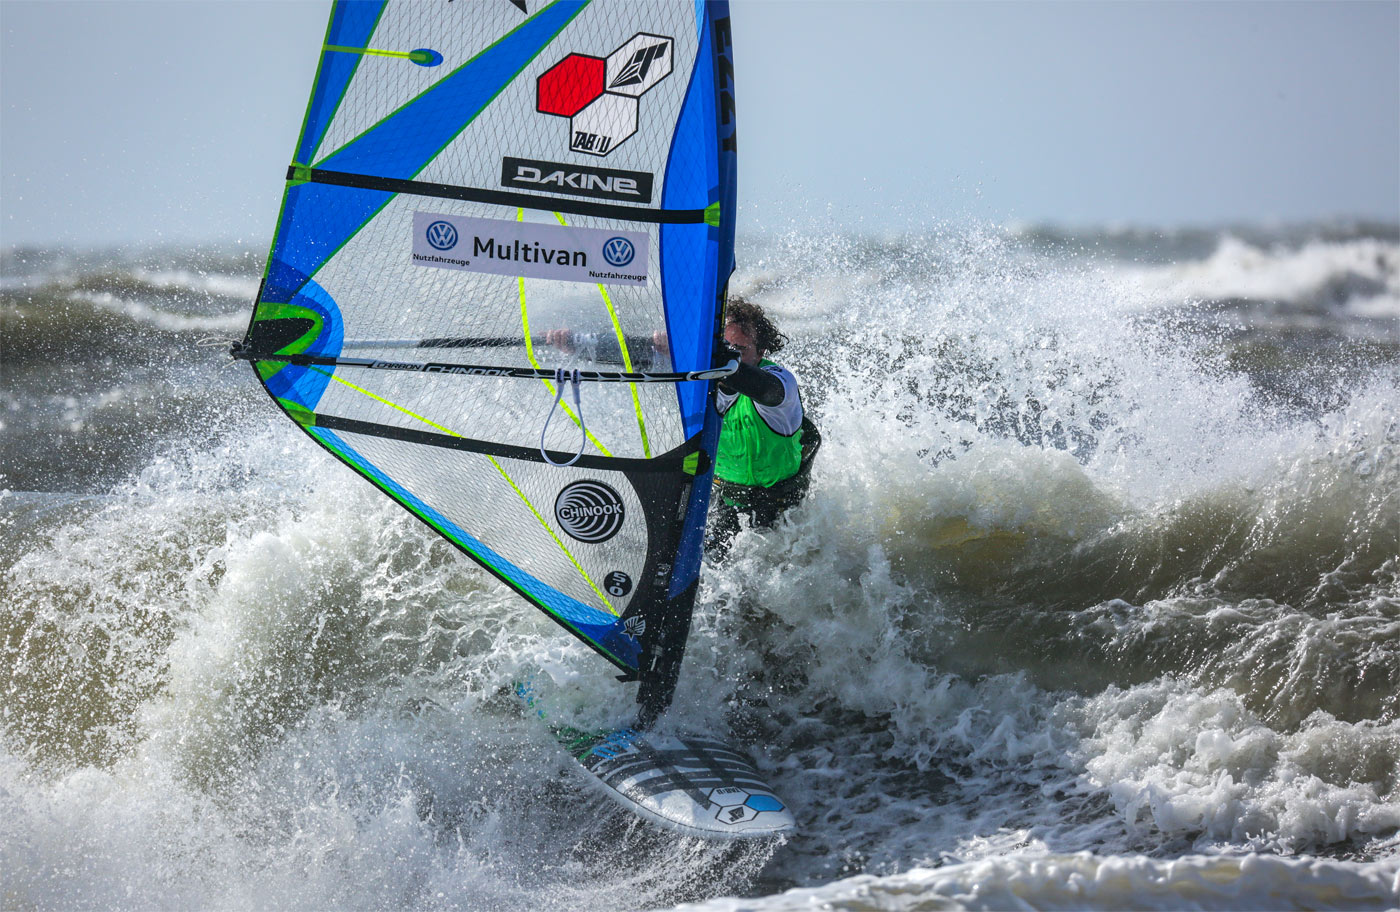 Graham Ezzy in the white water of Westerland (Photo by Lightnic)